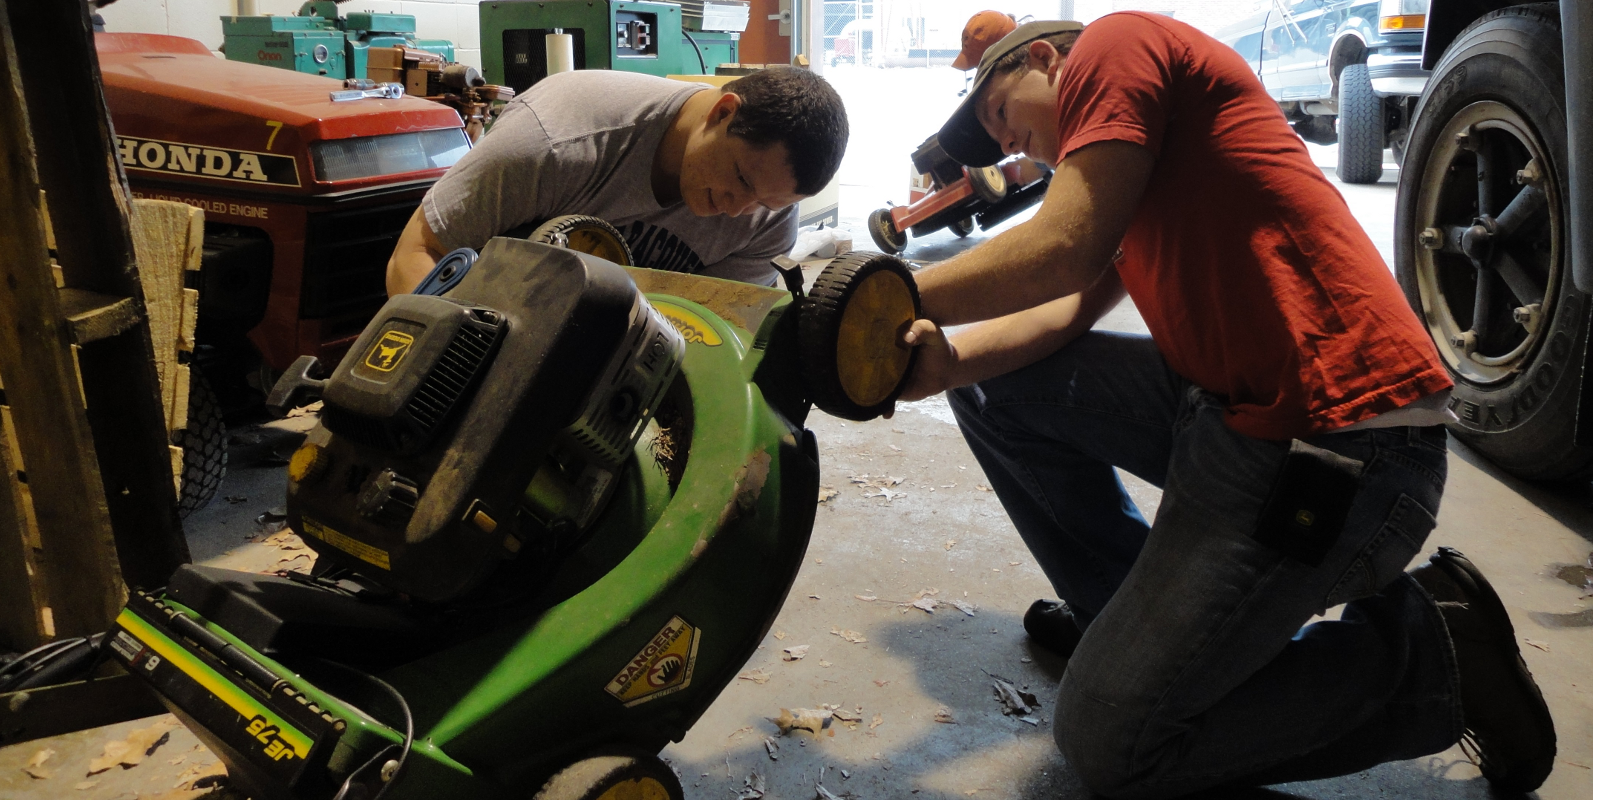 two AGEN students working with a lawn mower